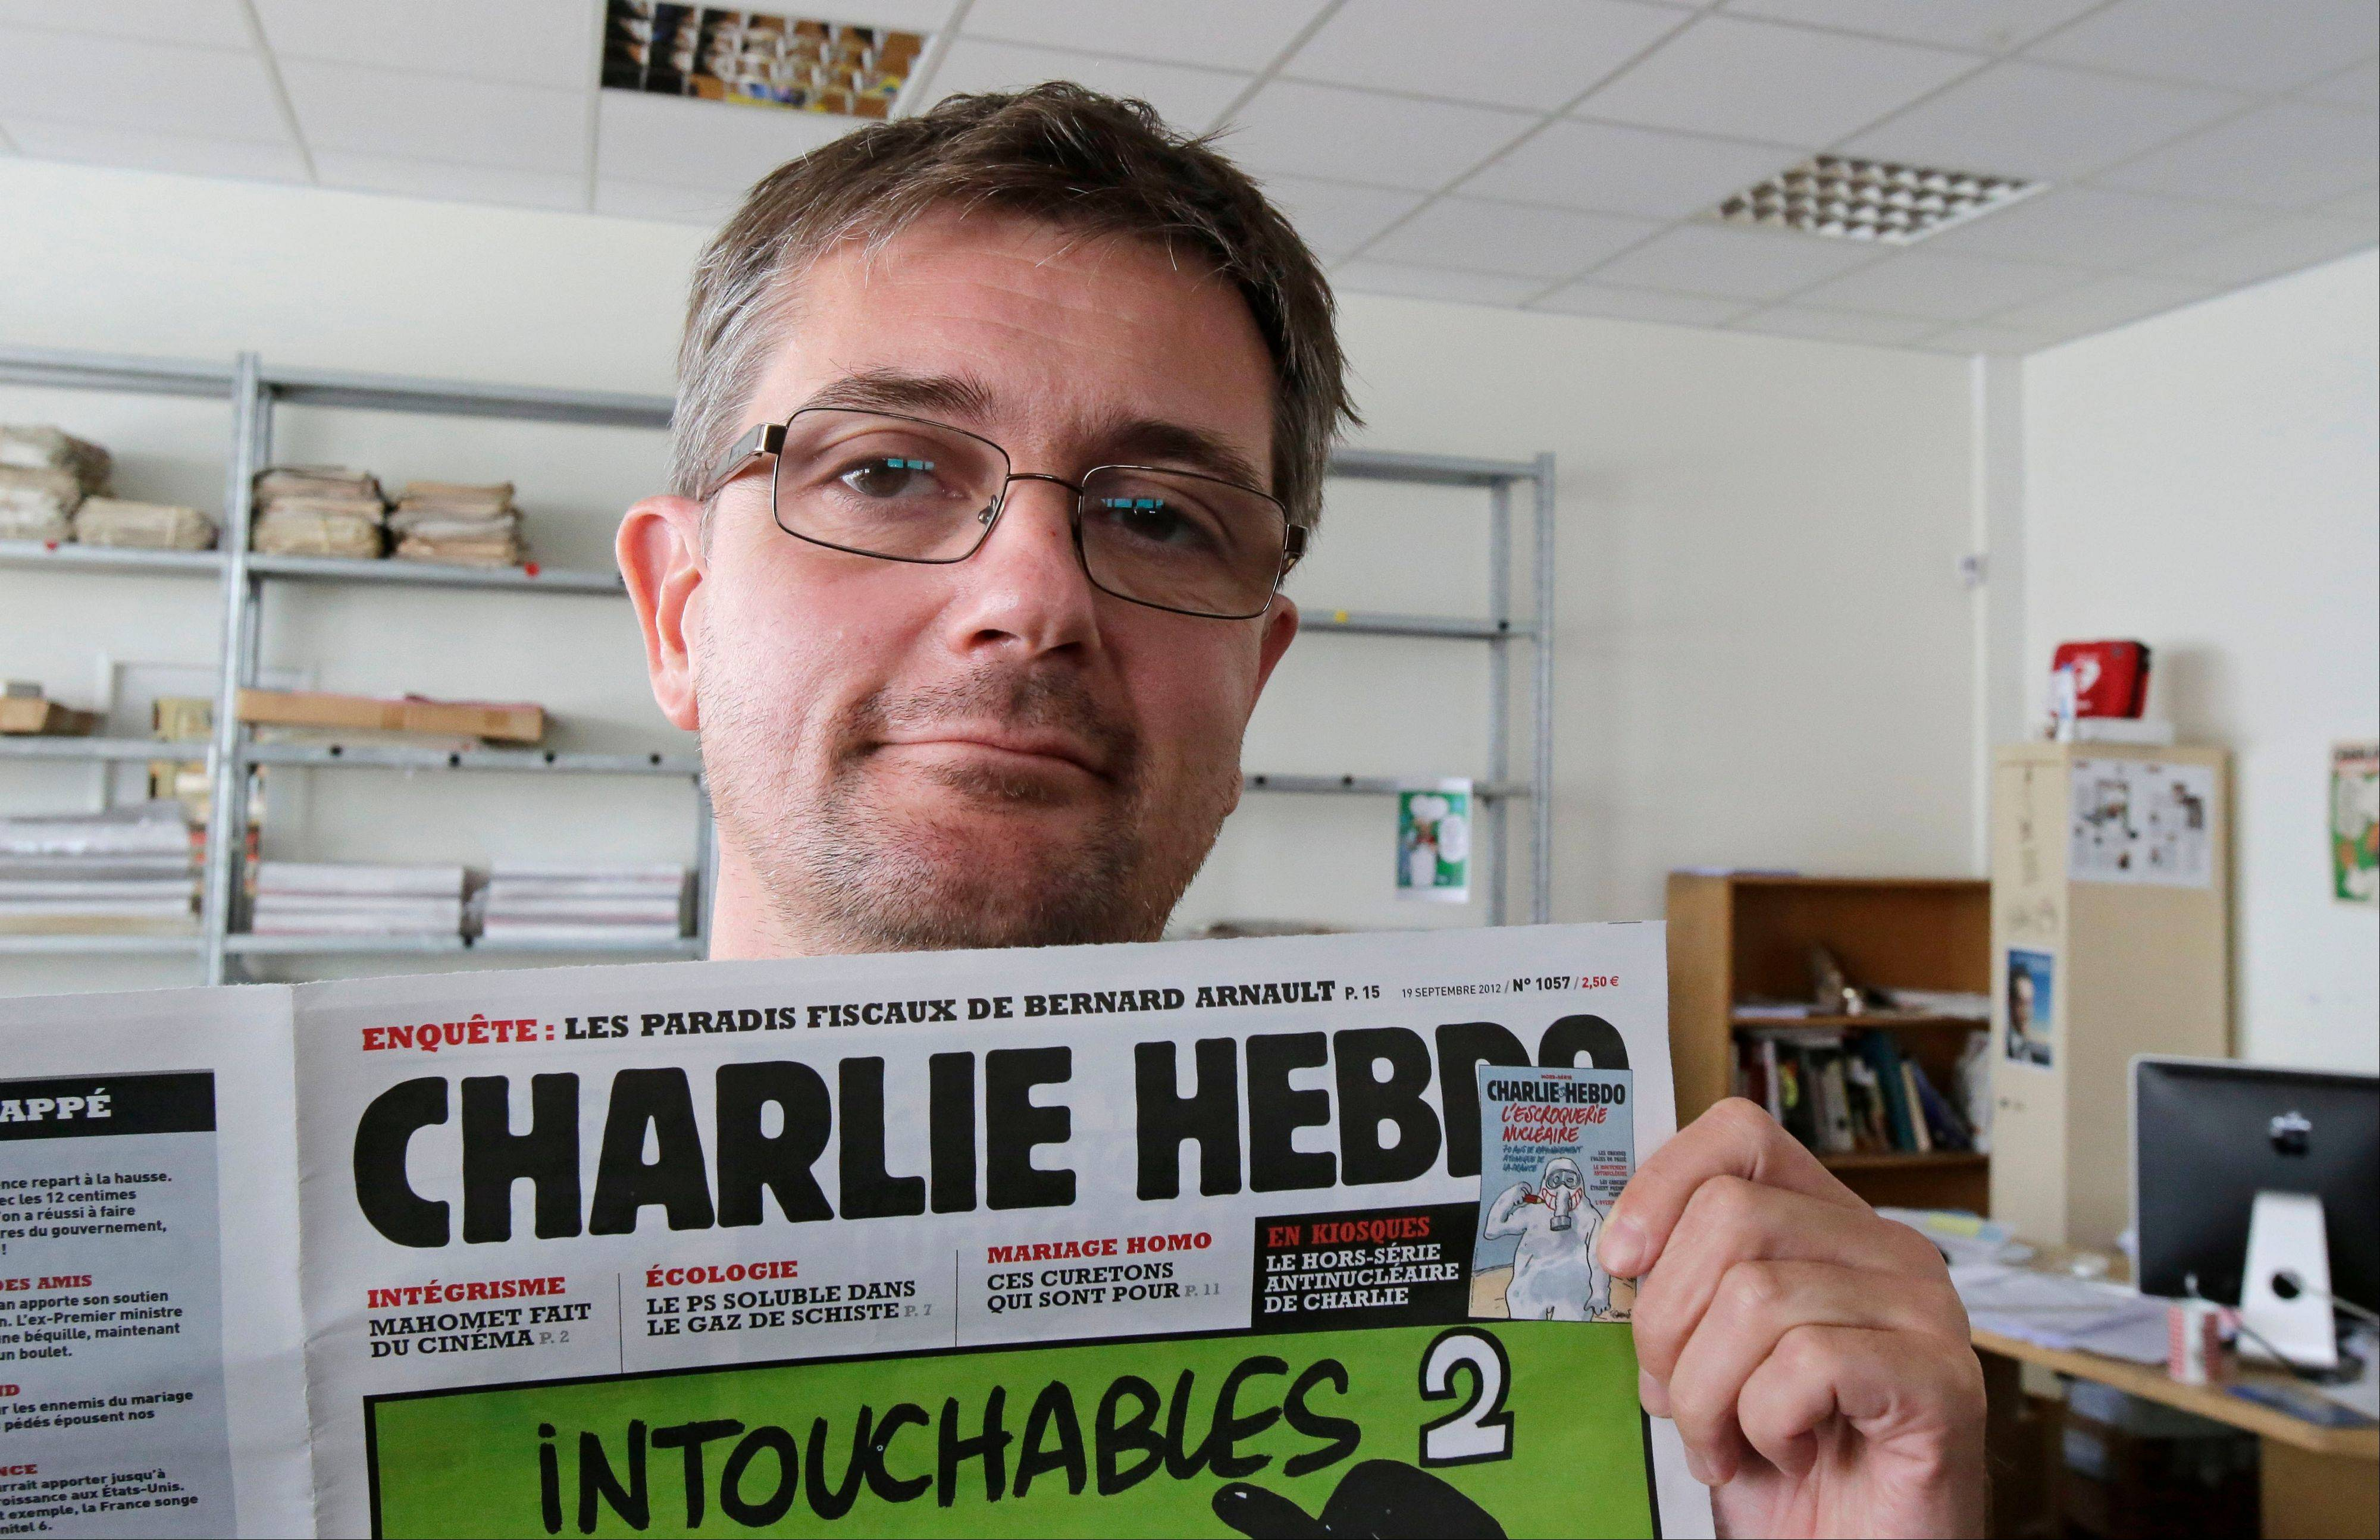 Charb, the publishing director of the satyric weekly Charlie Hebdo, displays the front page of the newspaper in Paris Wednesday. Police took up positions outside the office after it published crude caricatures of the Prophet Muhammad.